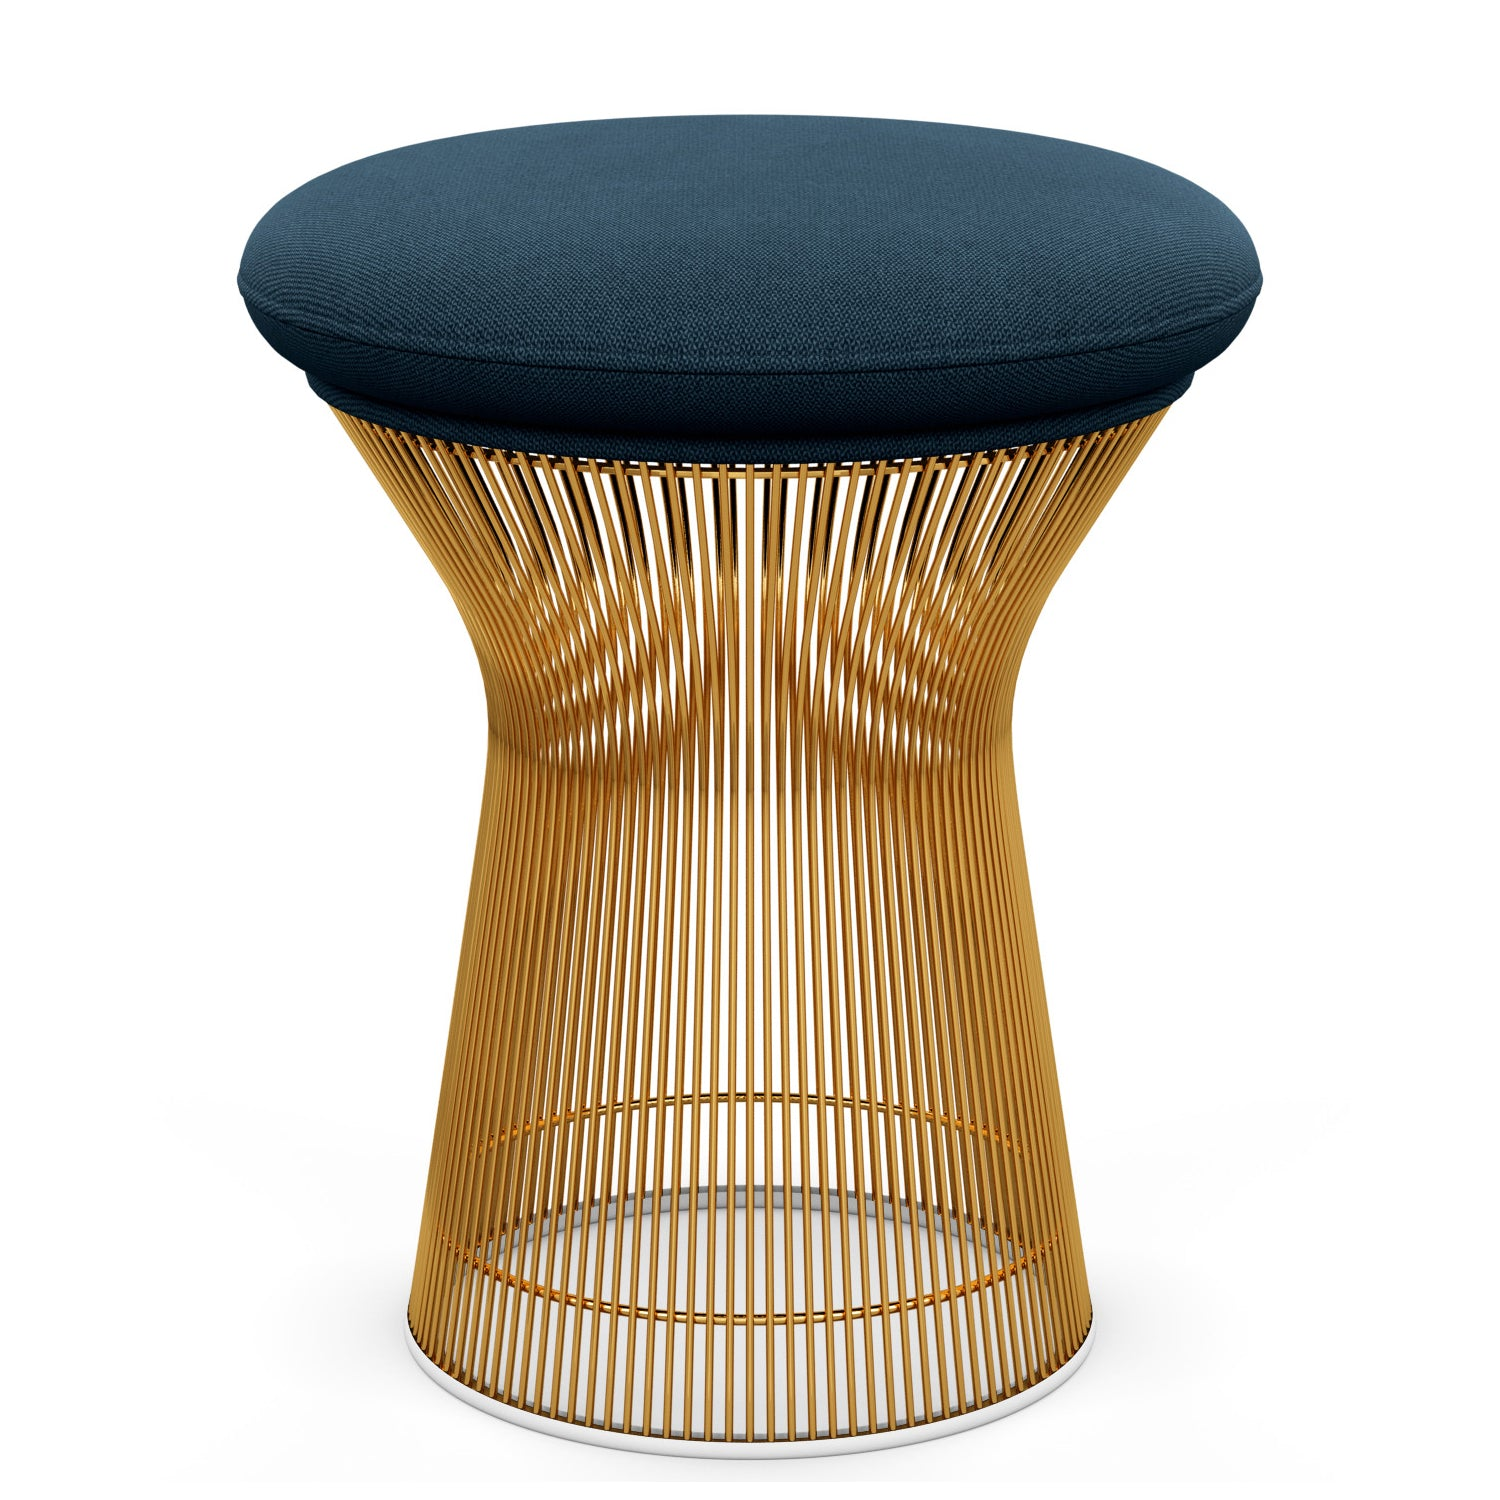 Unique Knoll Platner Gold Stool Recommended Item